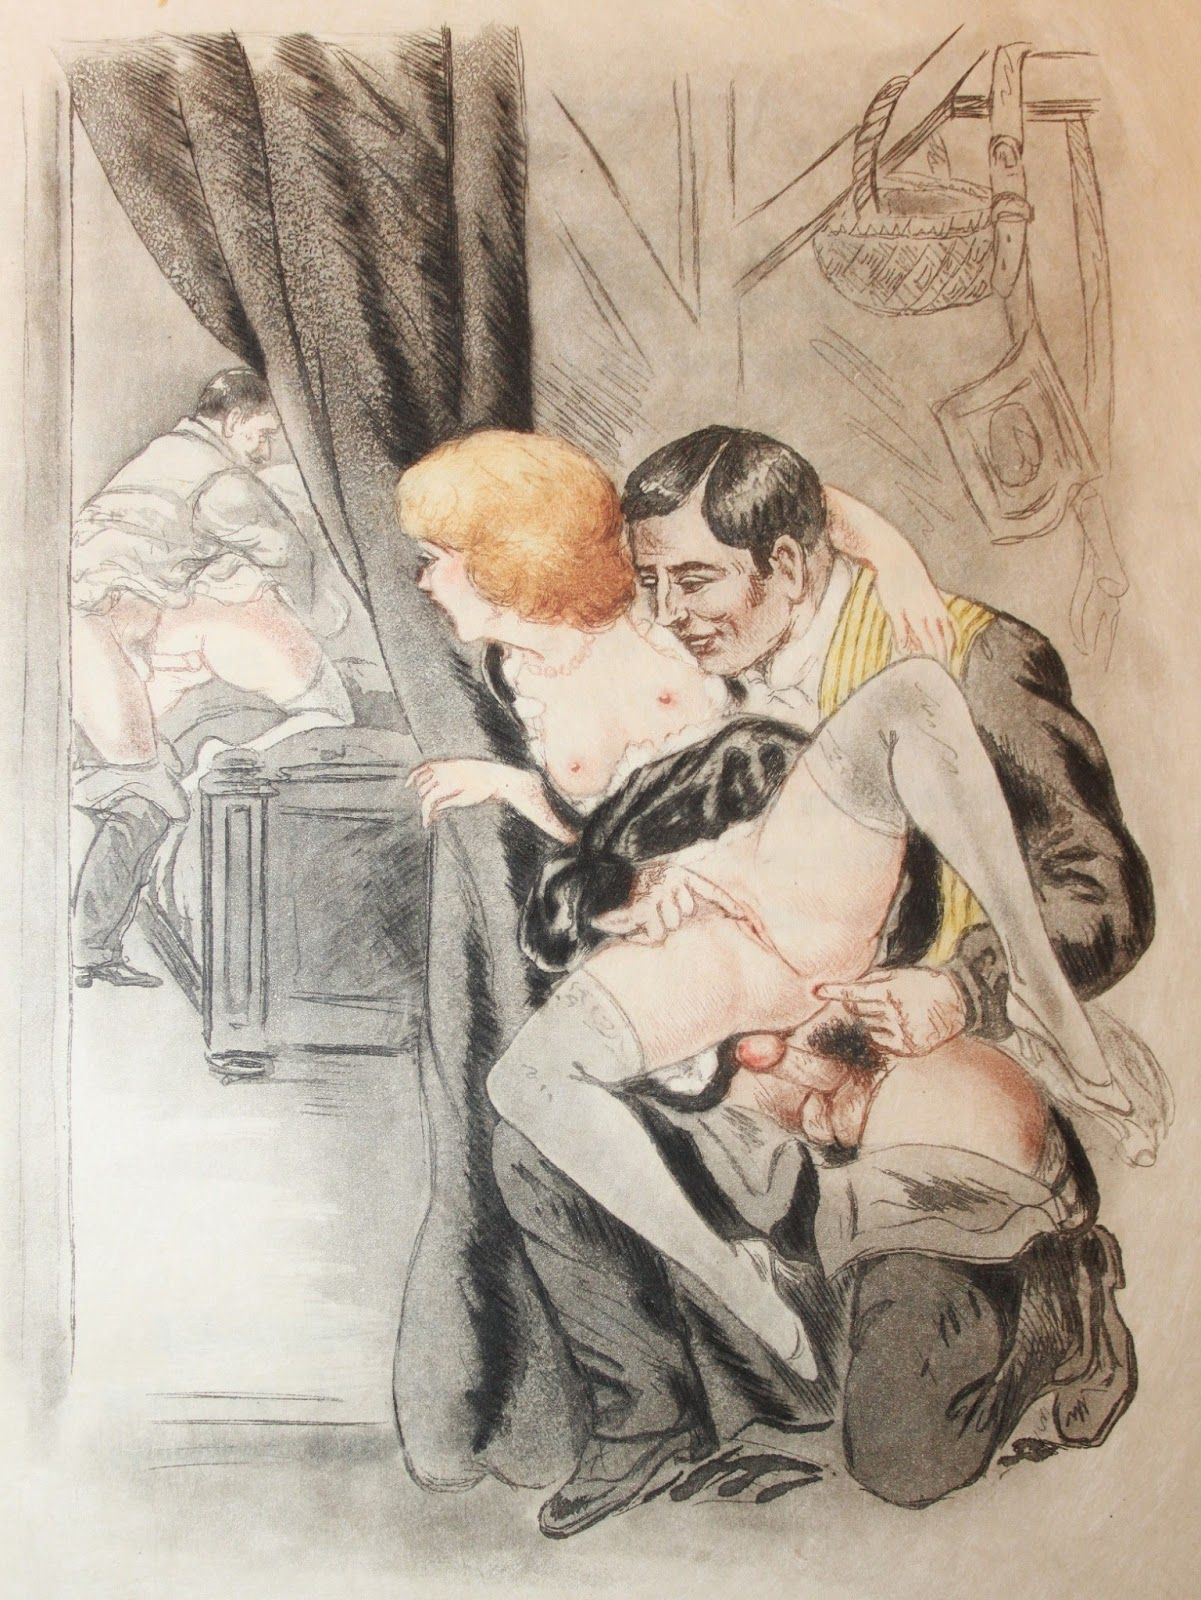 18th century themed mmf threesome - 5 4